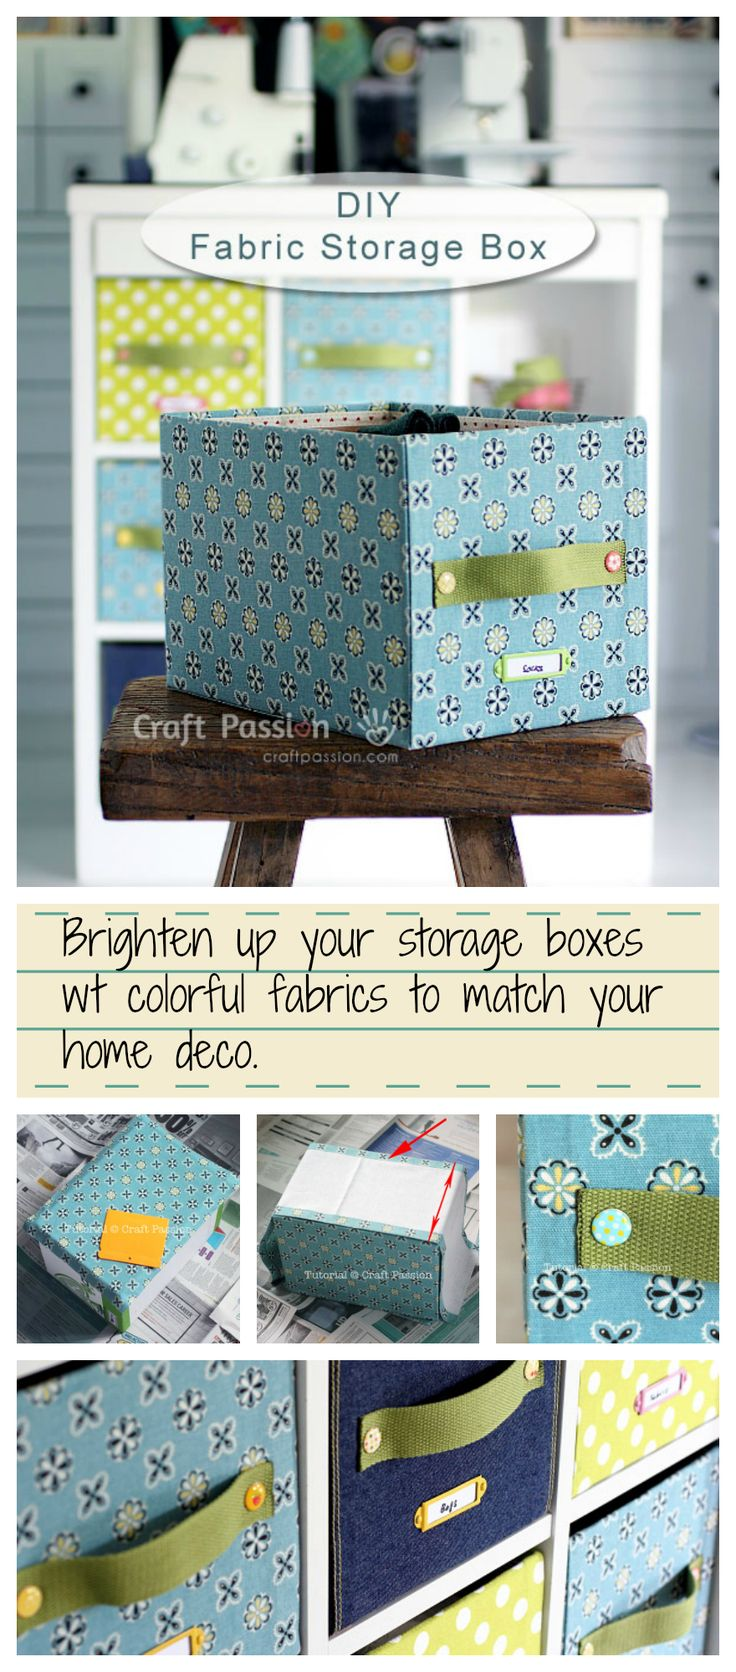 A detail tutorial on how to DIY fabric Storage Box by using carton box & fabric. Brighten up your storage boxes wt colorful fabrics to match your home deco.